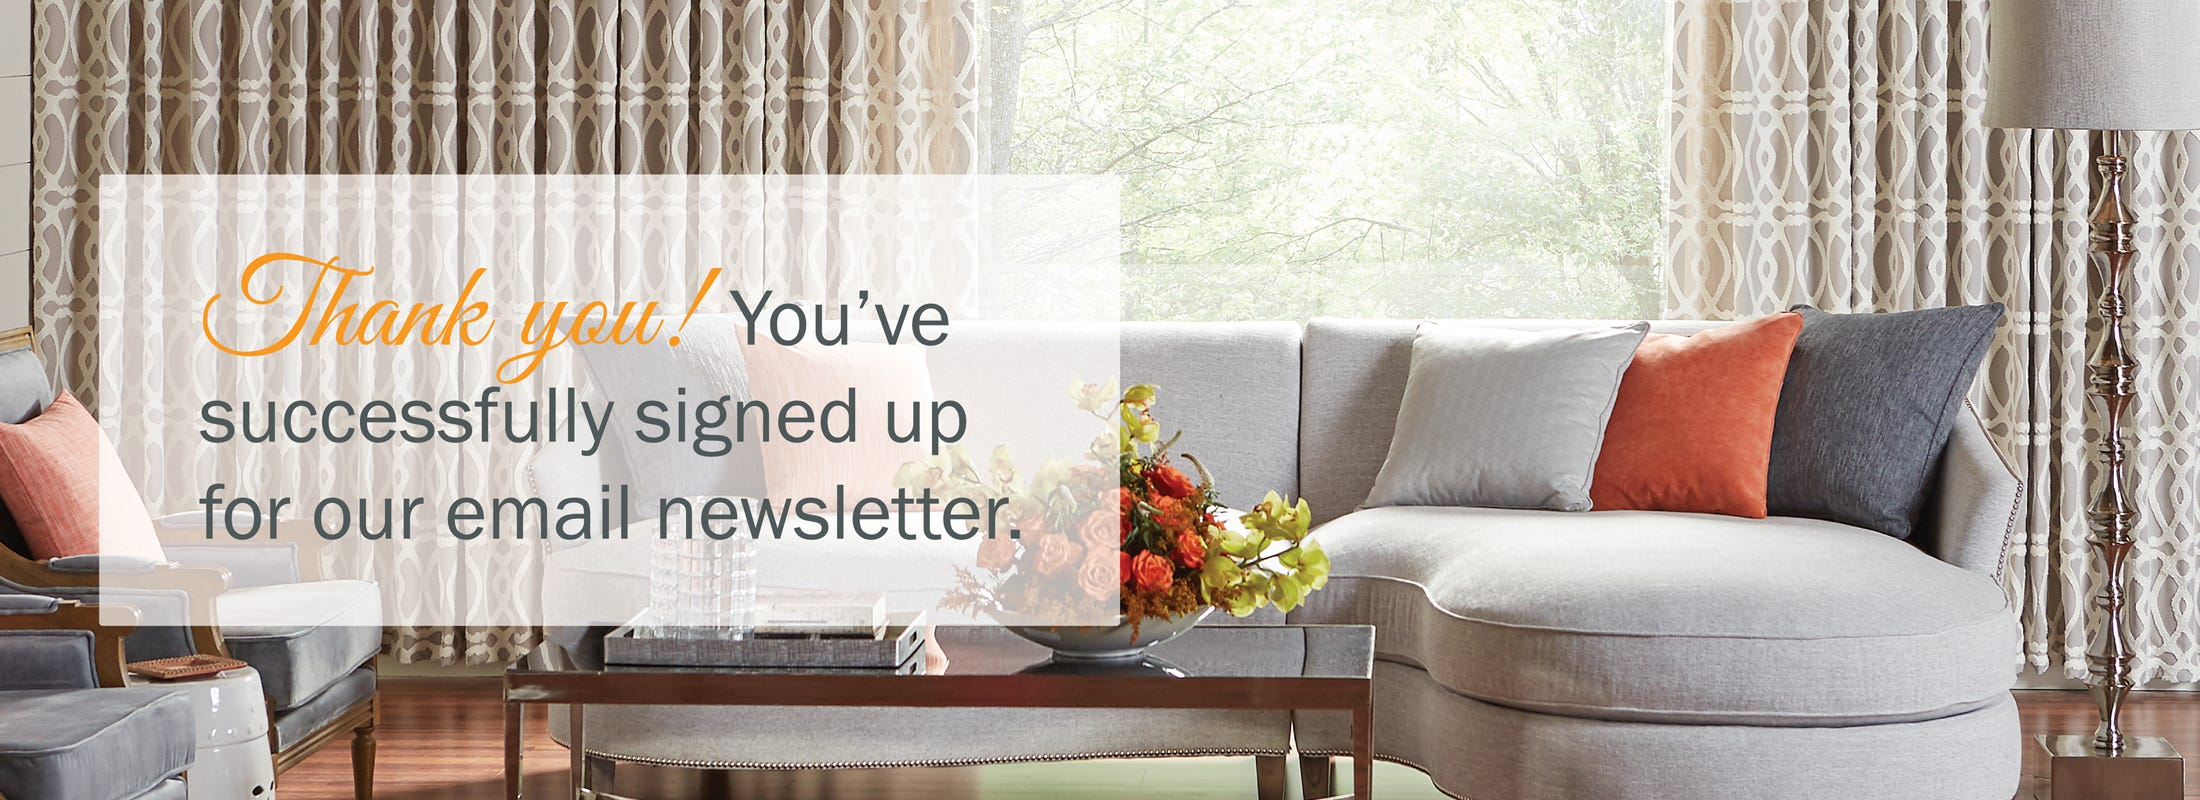 Thank you! You've successfully signed up for our email newsletter.